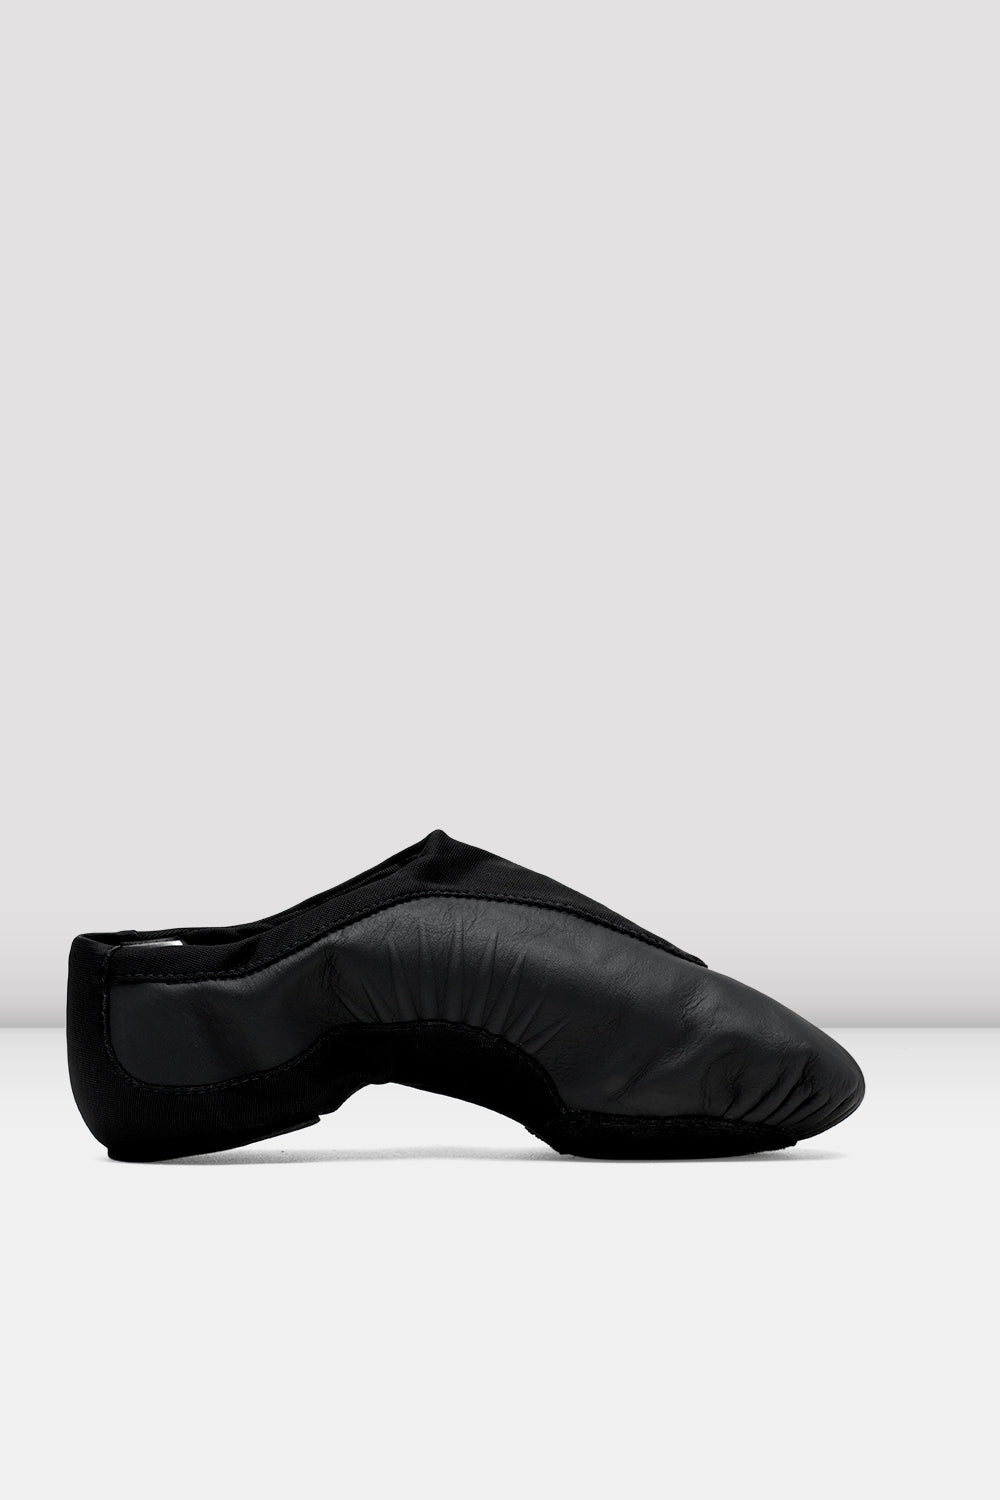 Ladies Pulse Leather Jazz Shoes - BLOCH US